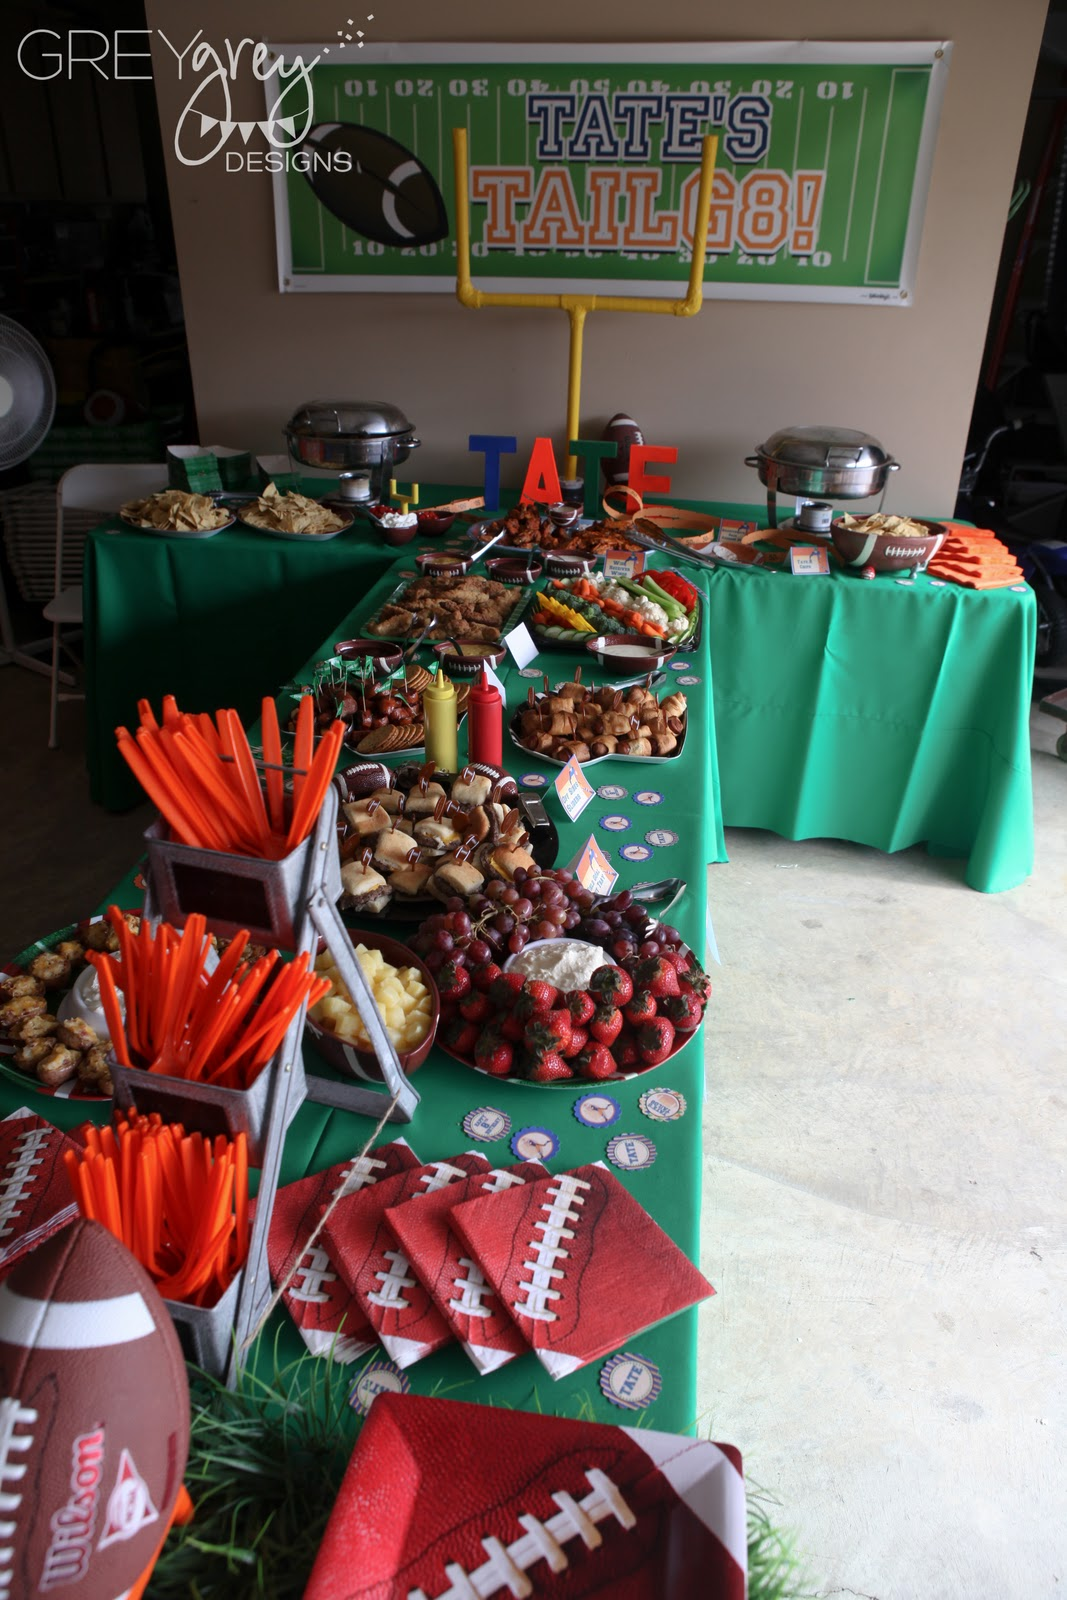 Greygrey Designs My Parties Tate S Tailg8 Football Party